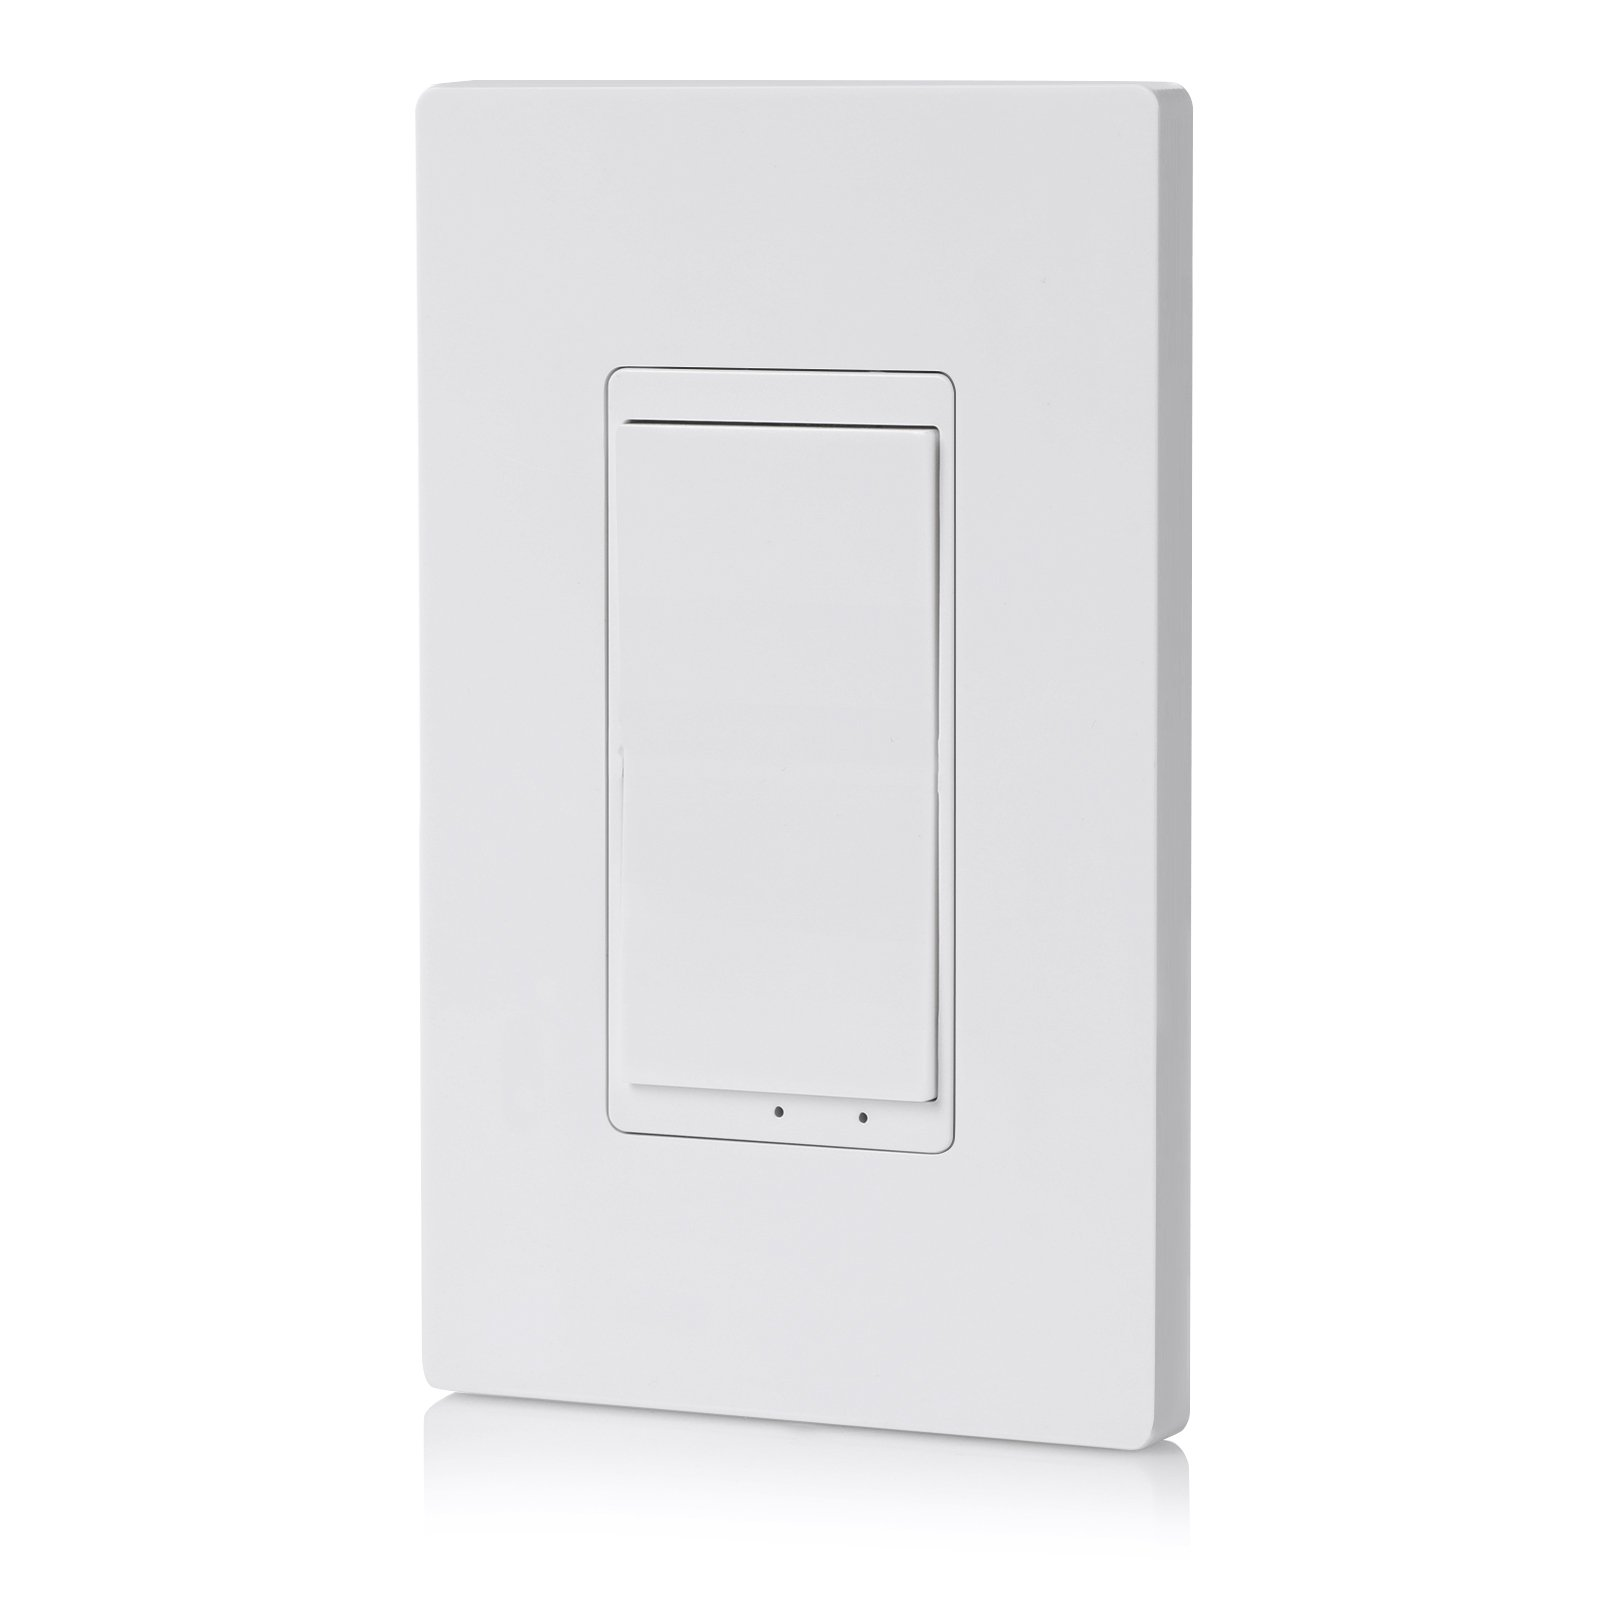 DEWENWILS Smart WiFi Light Switch In-wall, Wireless Remote Control, No Hub Required, Control Your Fixtures from Anywhere, Compatible with Alexa, Google Assistant and IFTTT by DEWENWILS (Image #1)